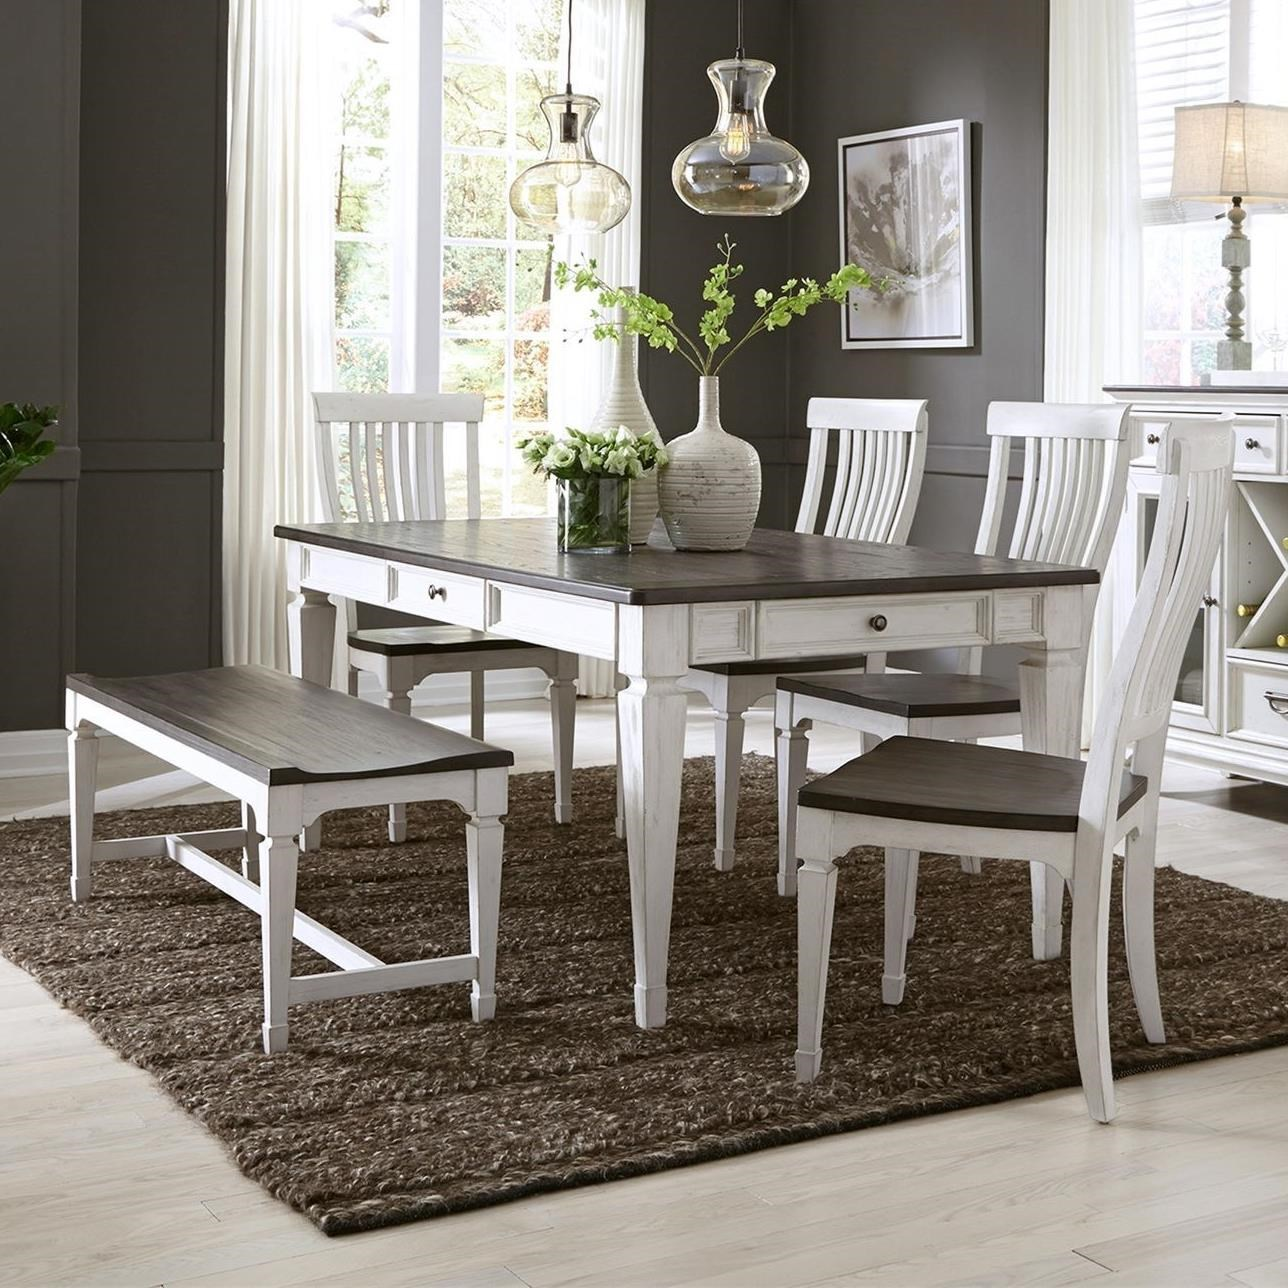 Allyson Park 6 Piece Rectangular Table Set  by Liberty Furniture at Catalog Outlet